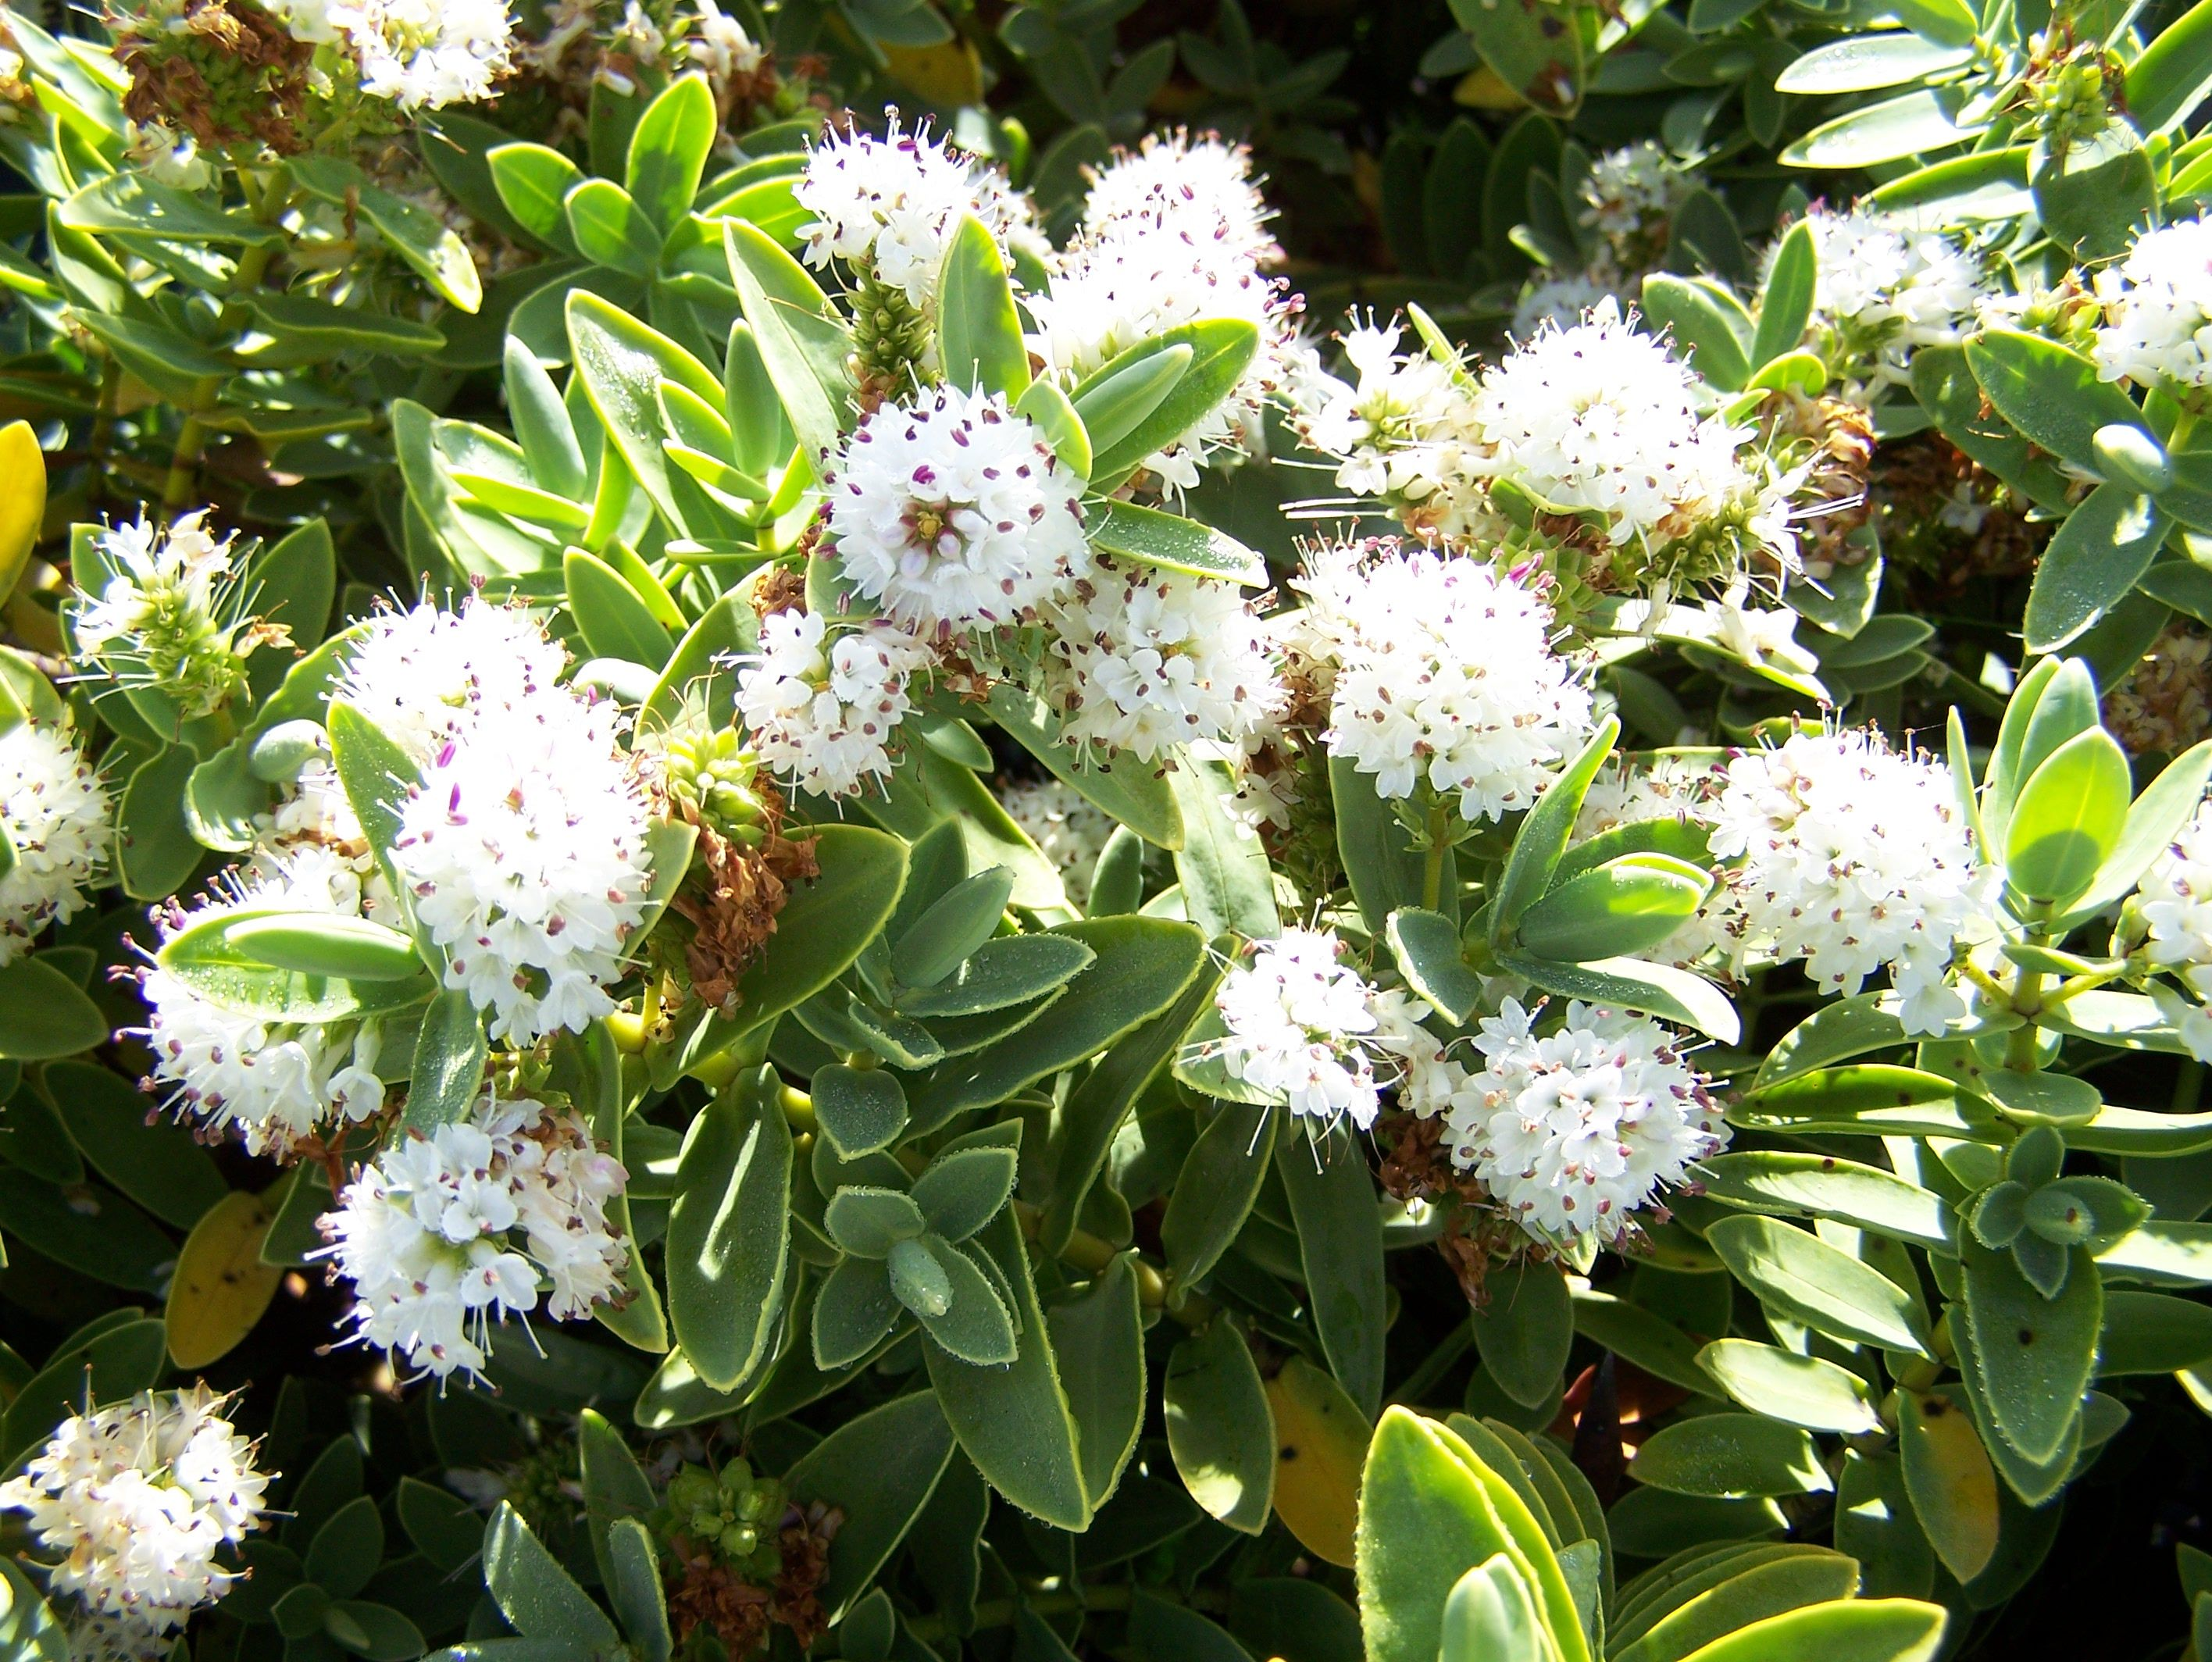 Hebe Albicans A Small 1m Evergreen Shrub With White Flowers In